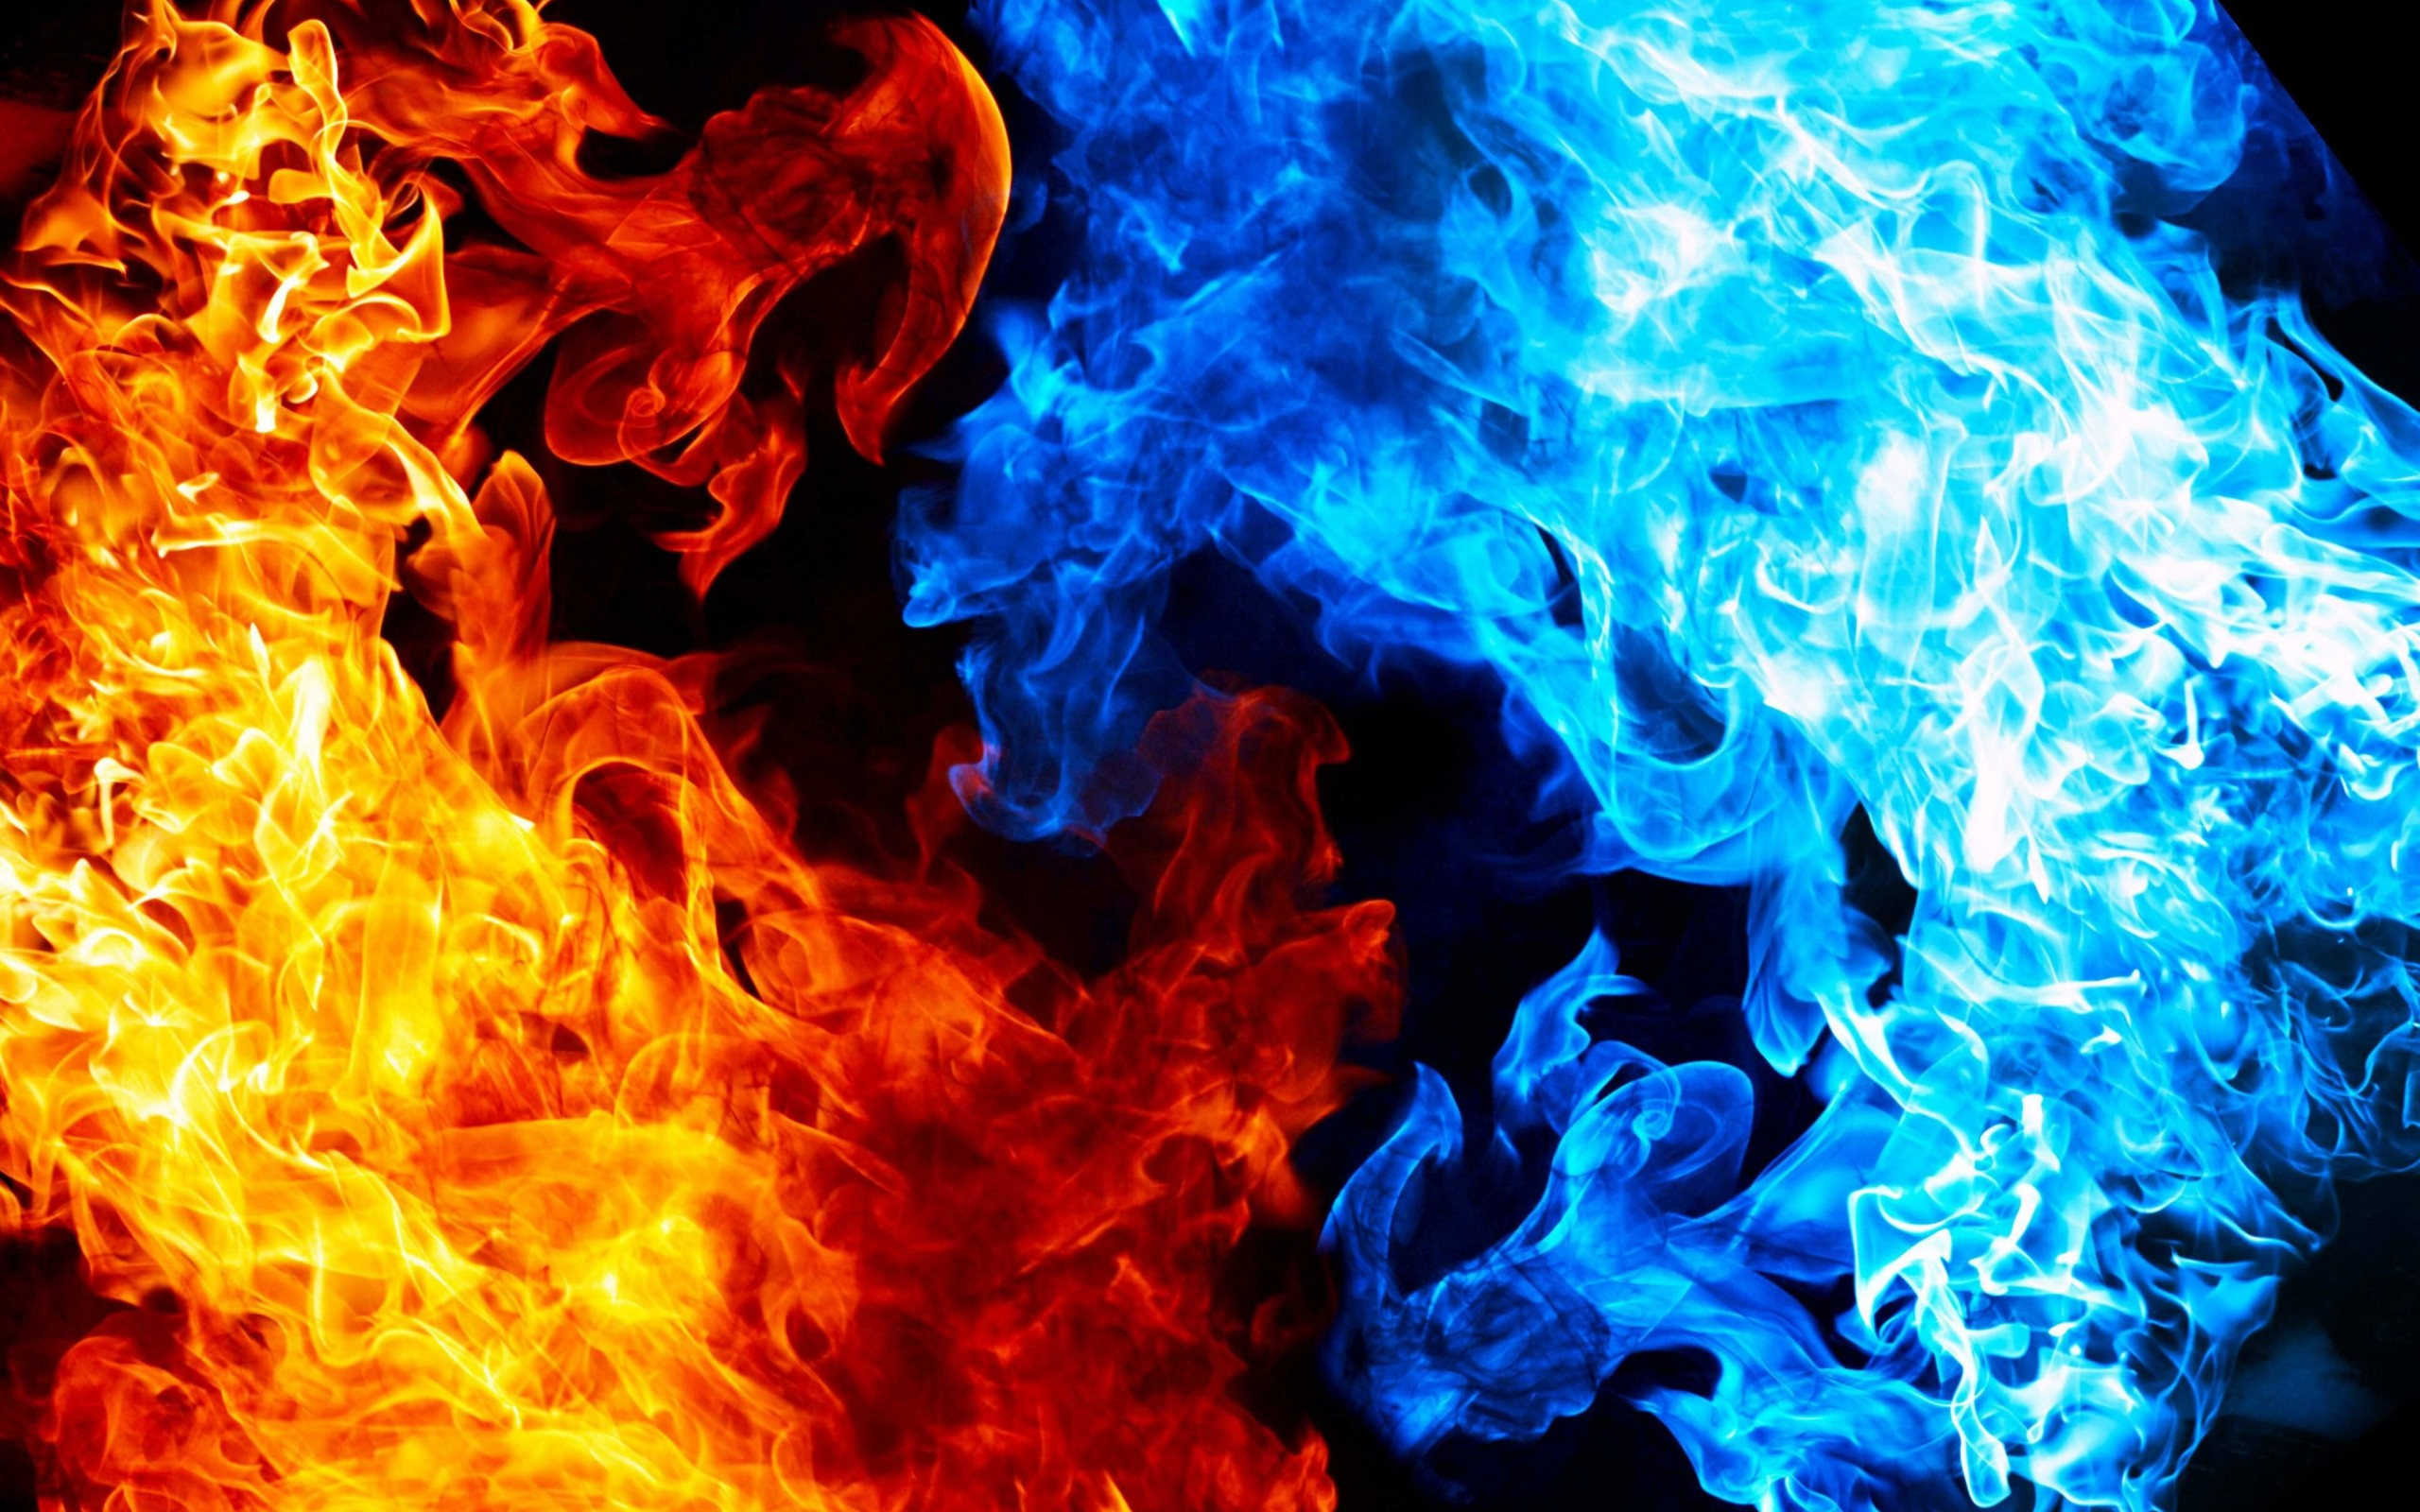 Blue And Red Fire Wallpaper for Desktop 2560x1600